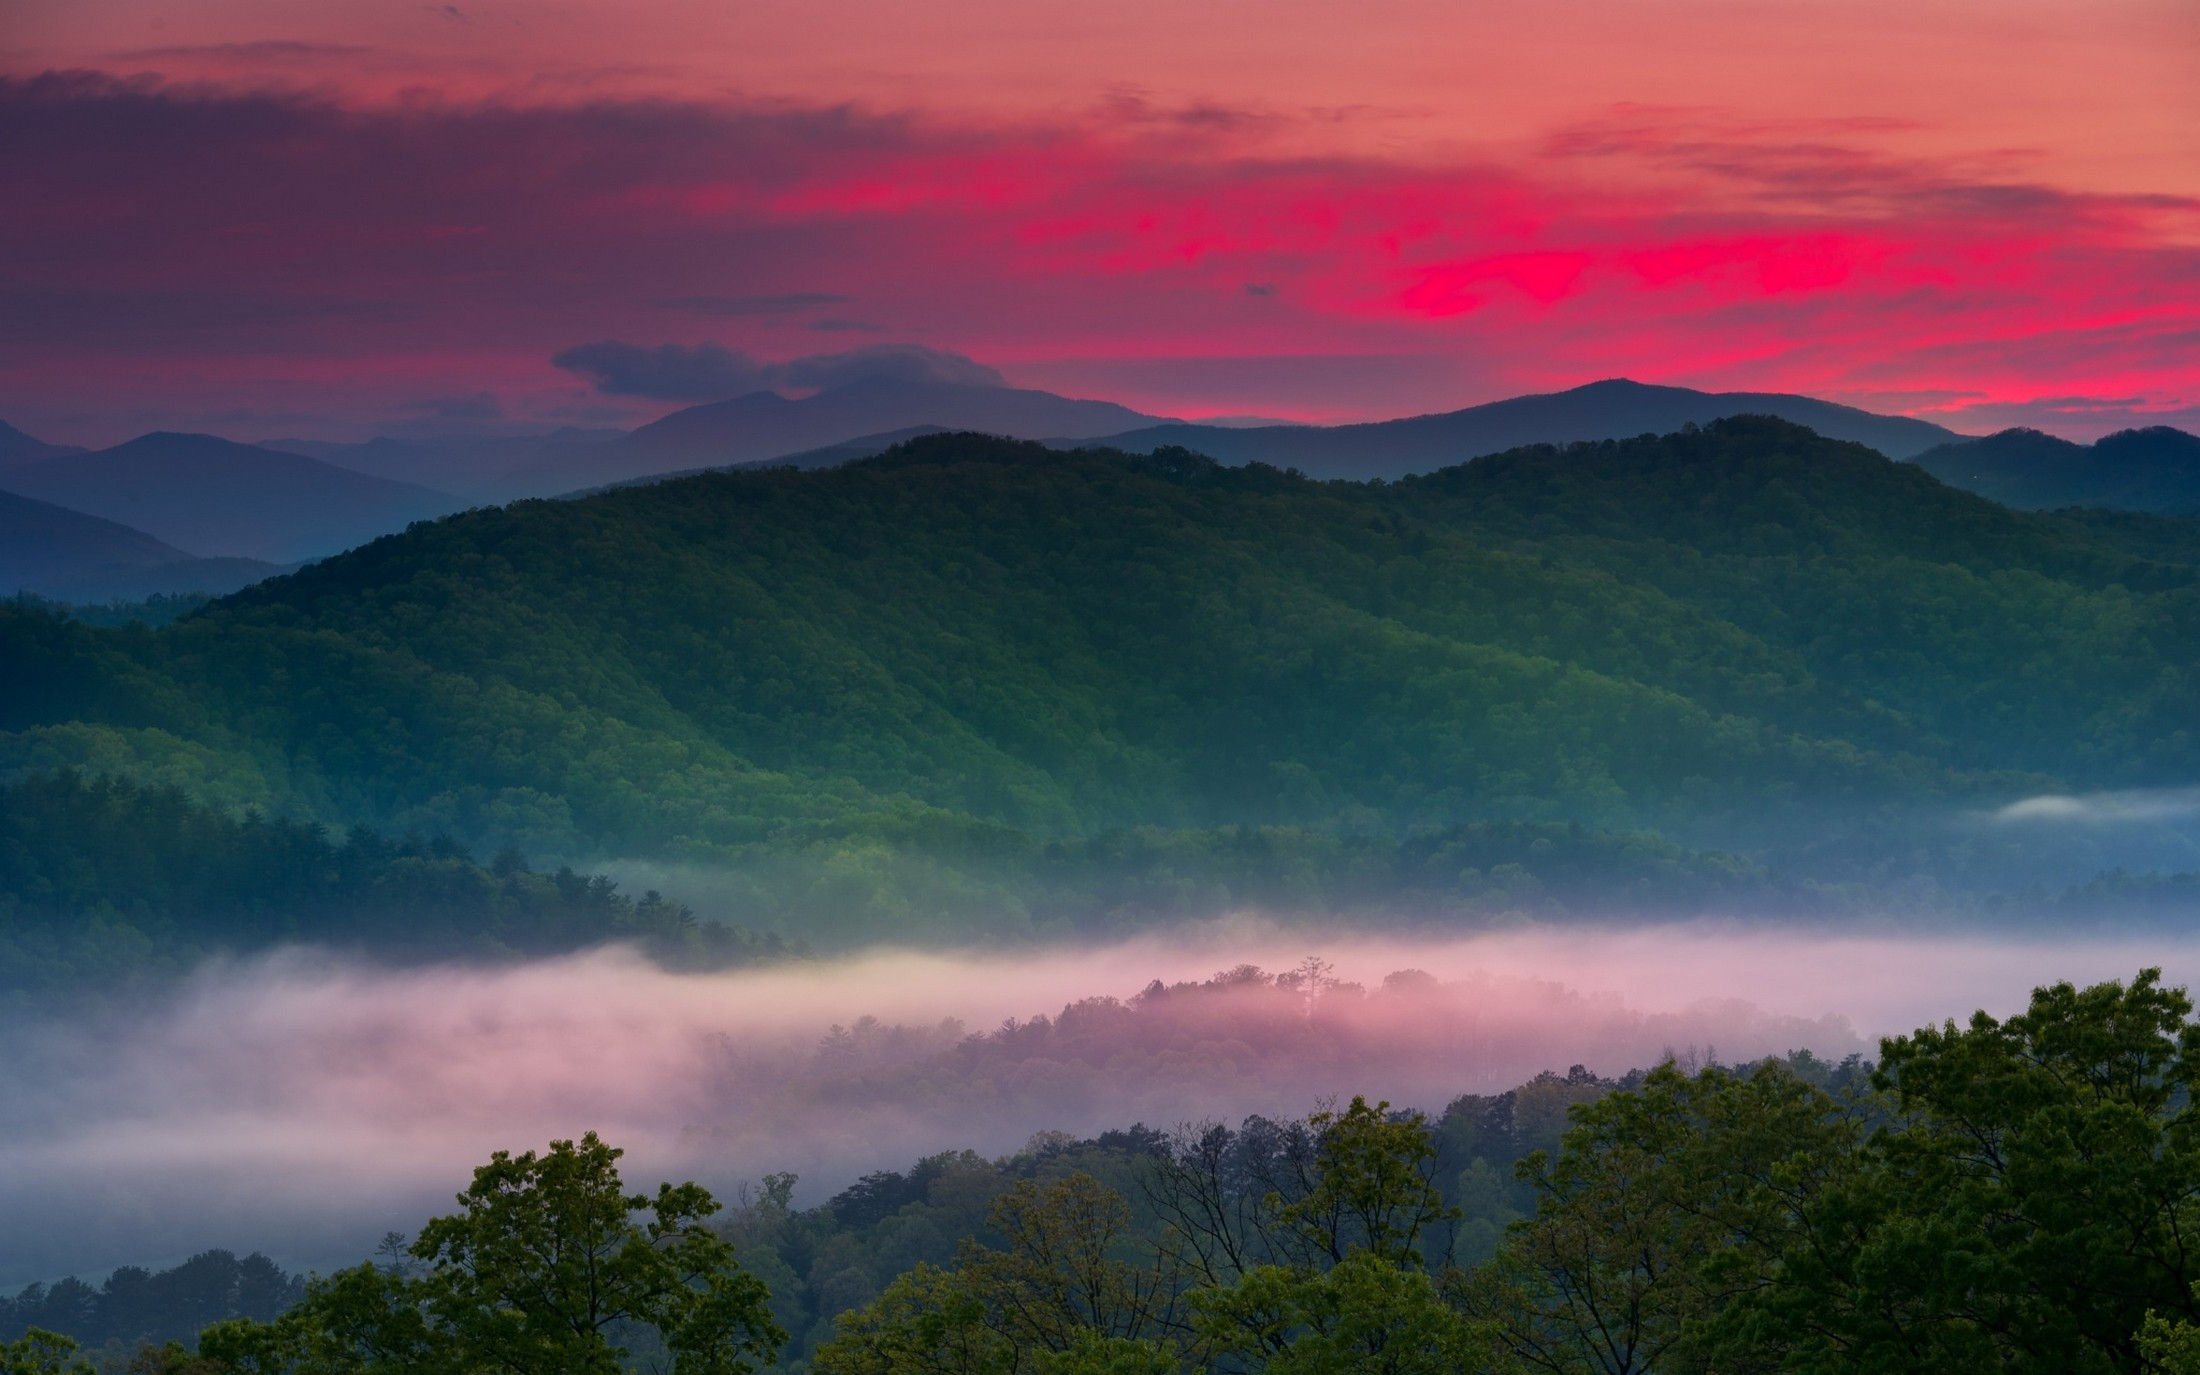 Fall In The Smoky Mountains Wallpaper Nature Landscape Spring Sunrise Mist Valley Mountain